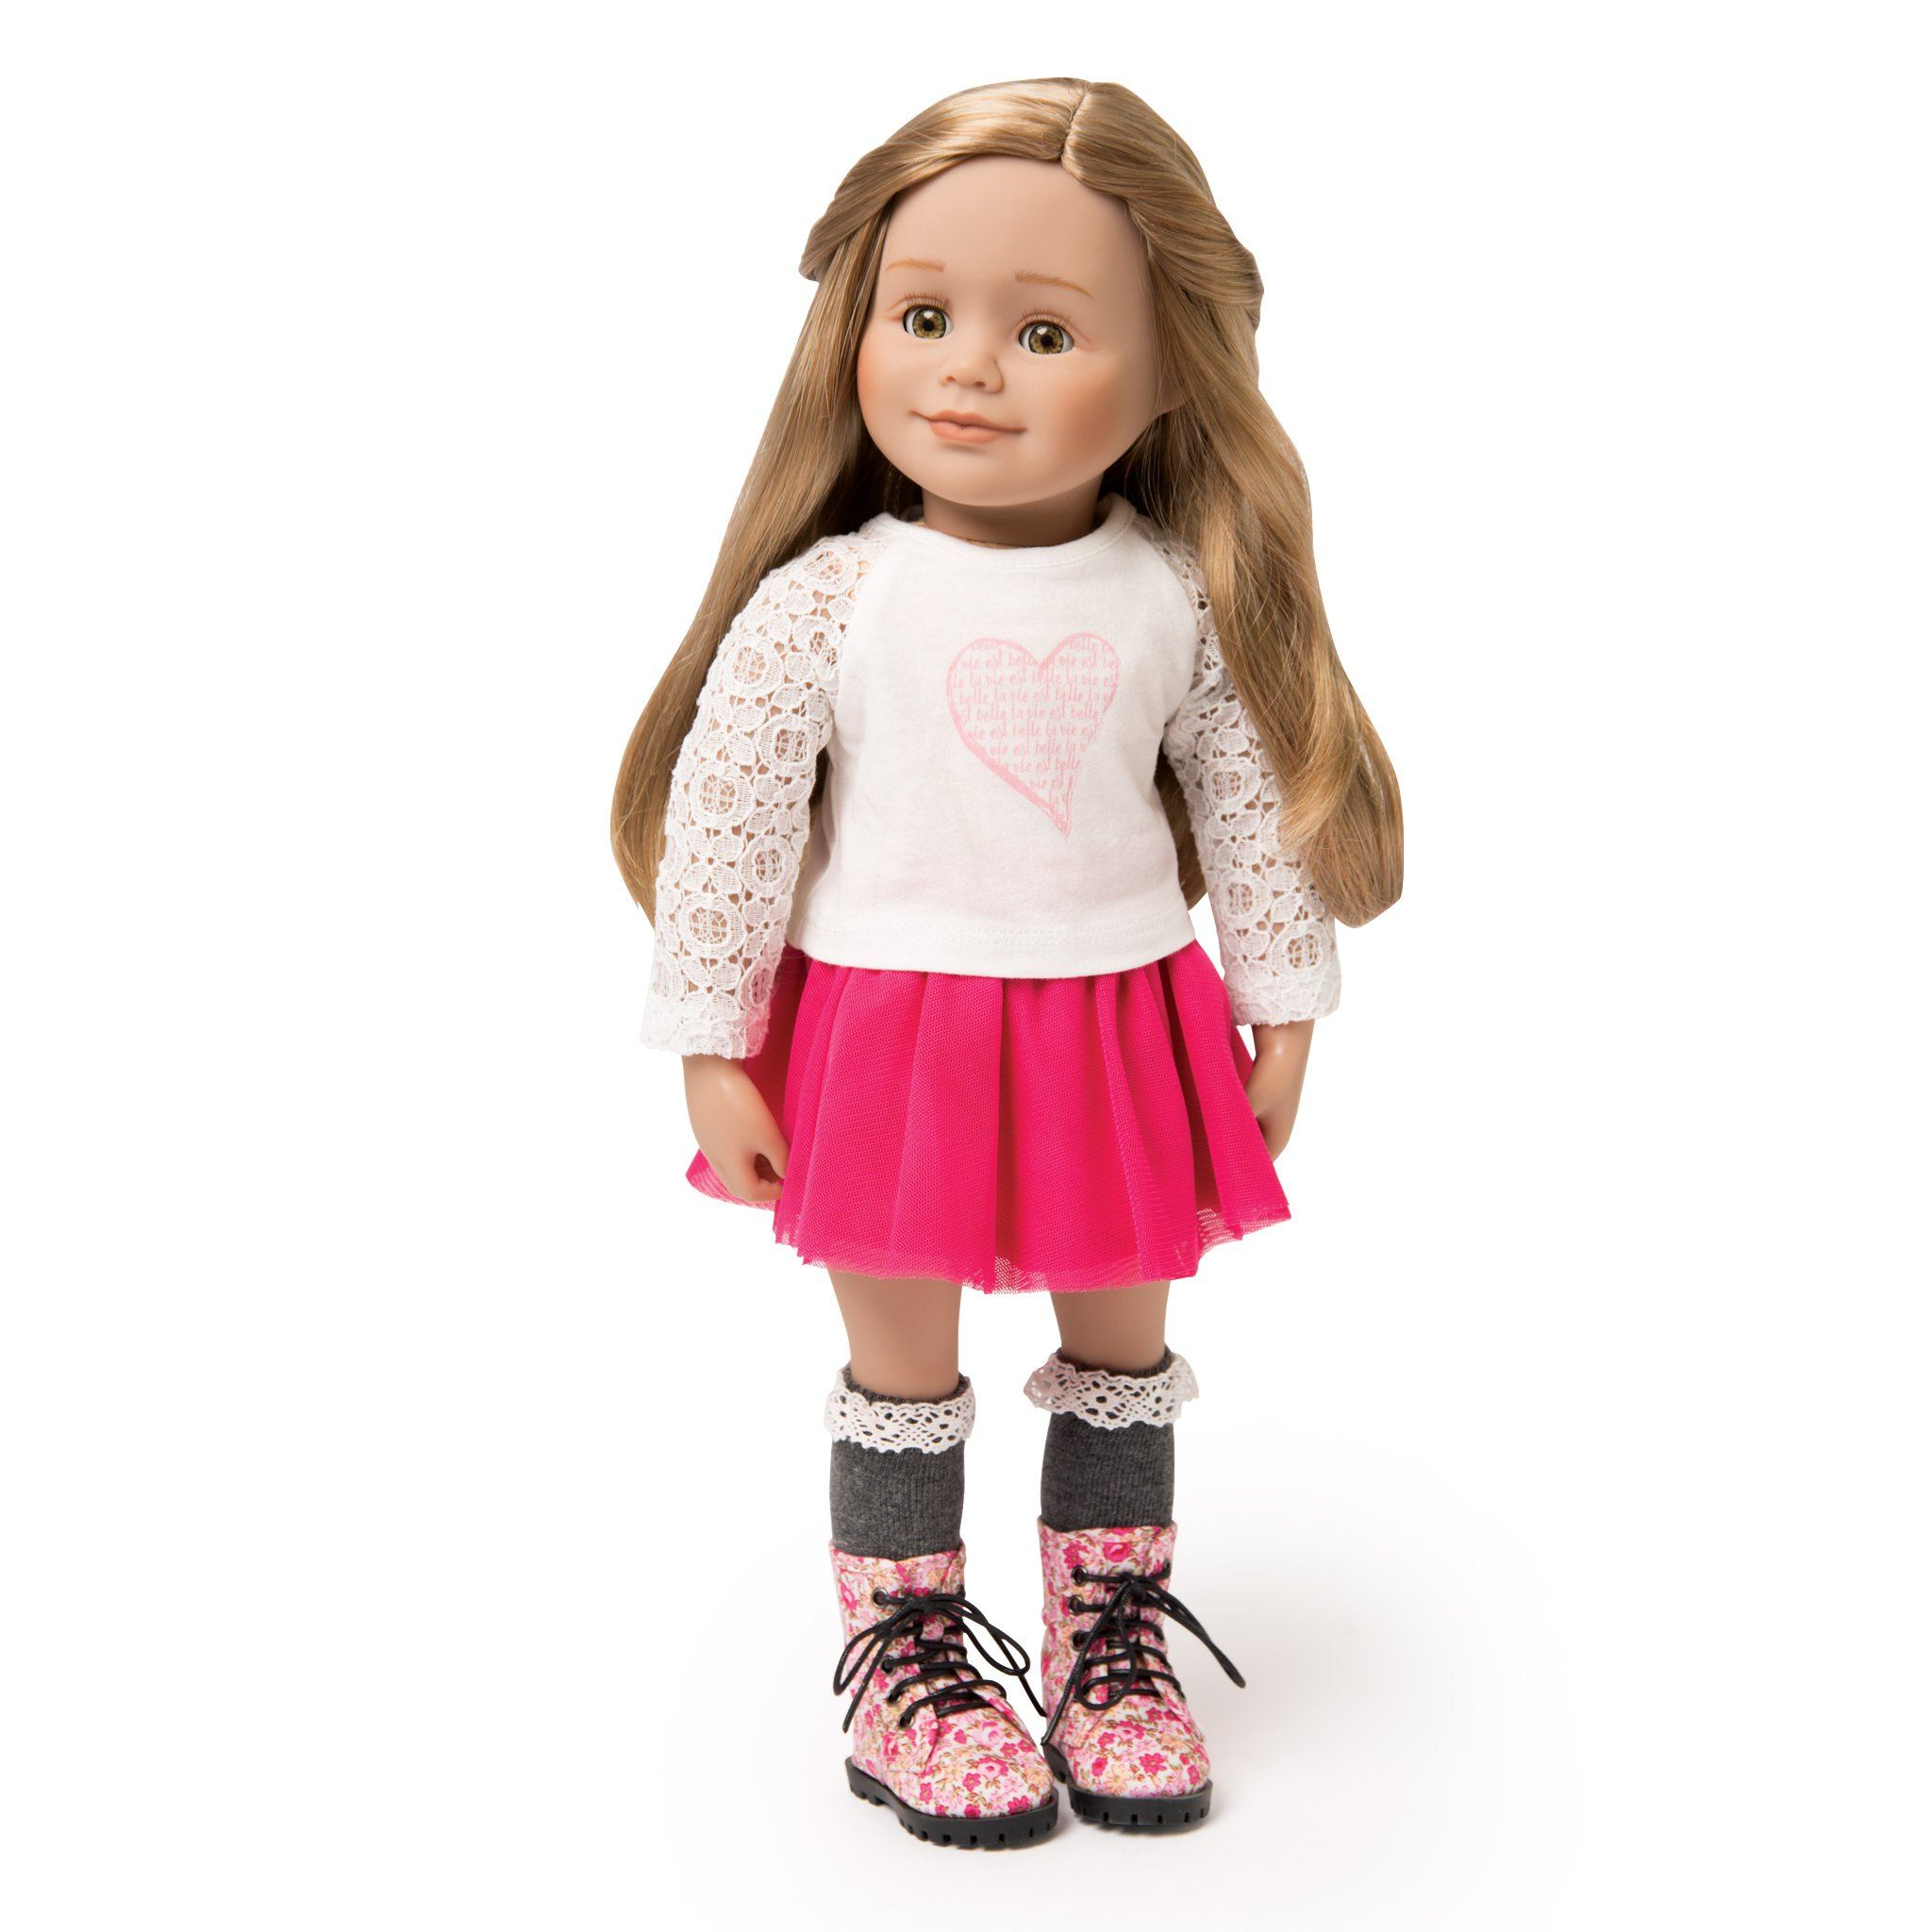 White lace top with heart graphic pink mesh skirt, grey knee-socks, floral boots on 18 inch doll.